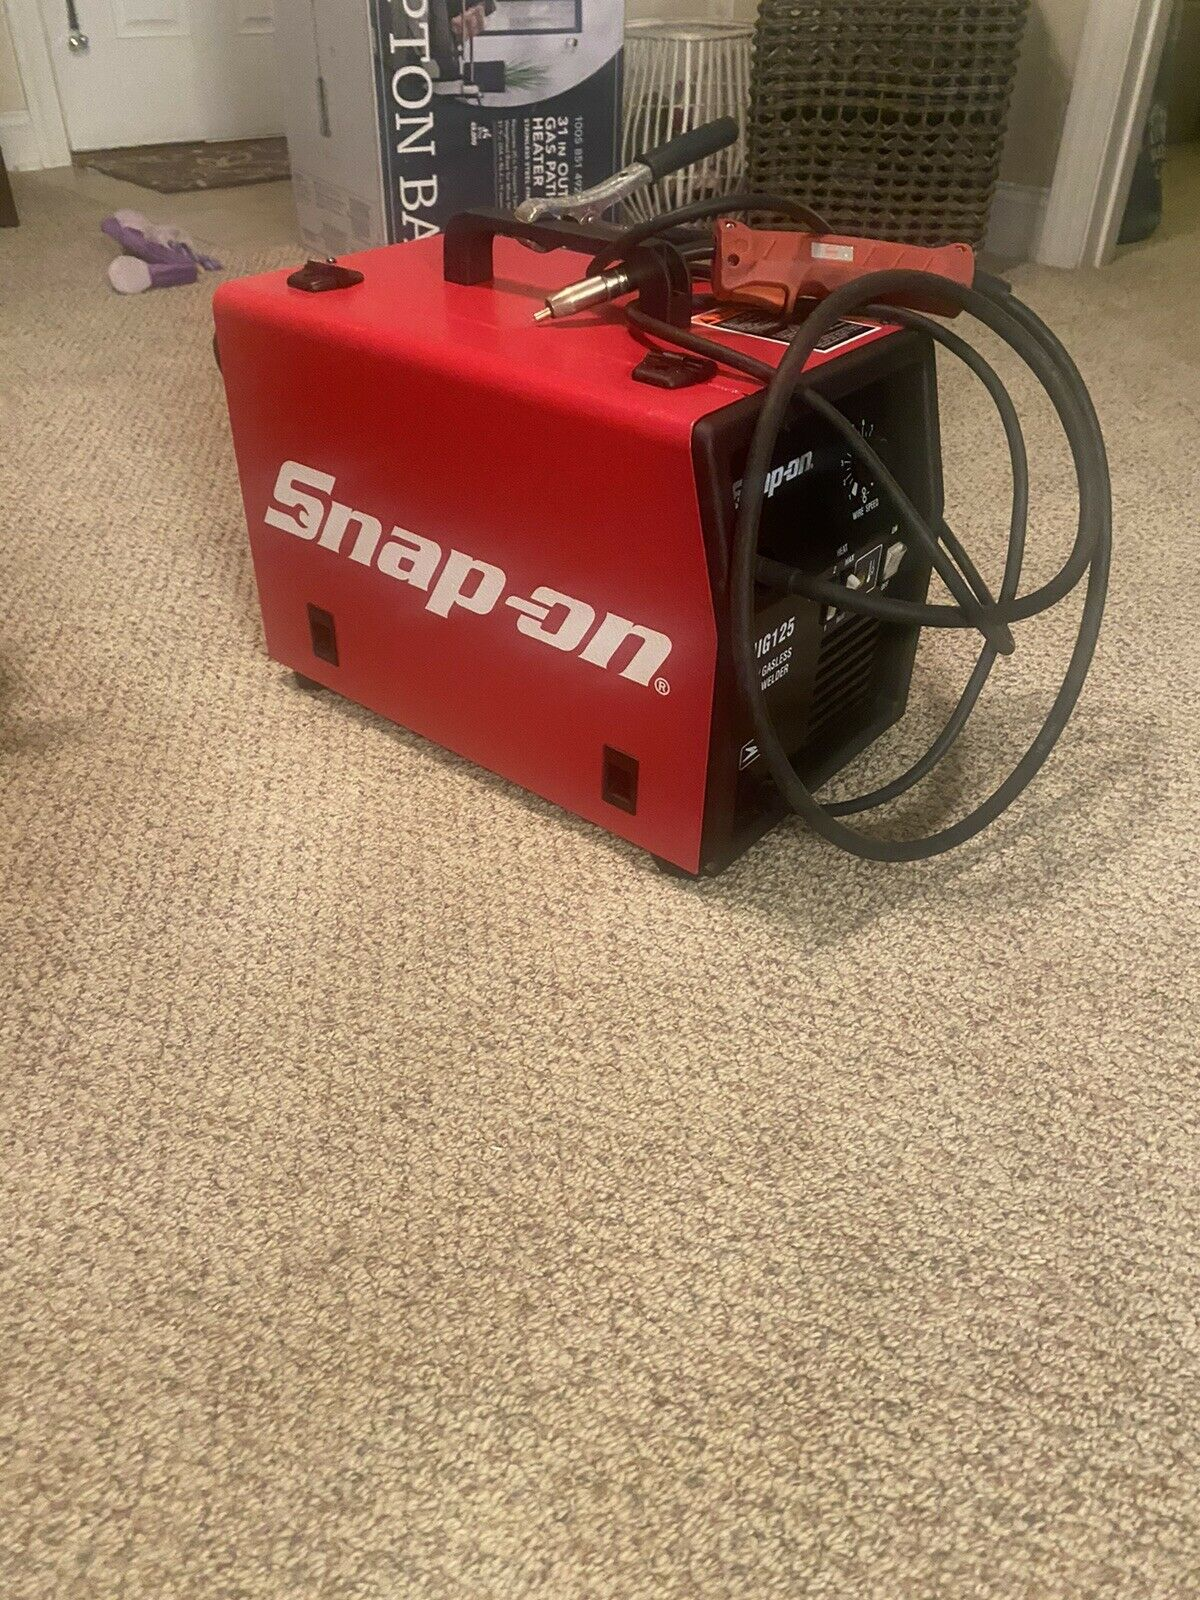 snap on welder. Available Now for 1200.00